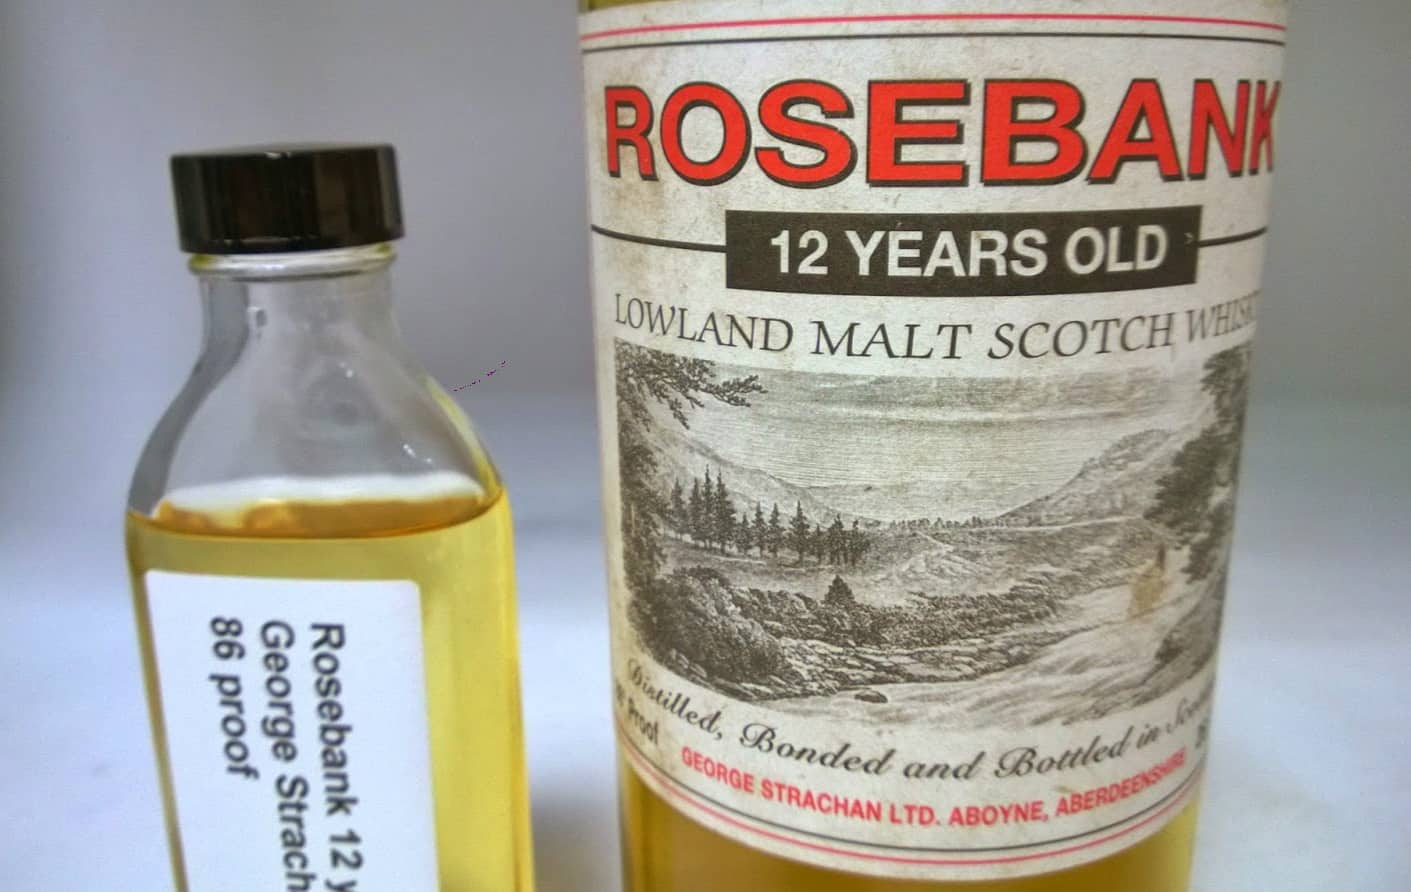 Rosebank 12 Years Old